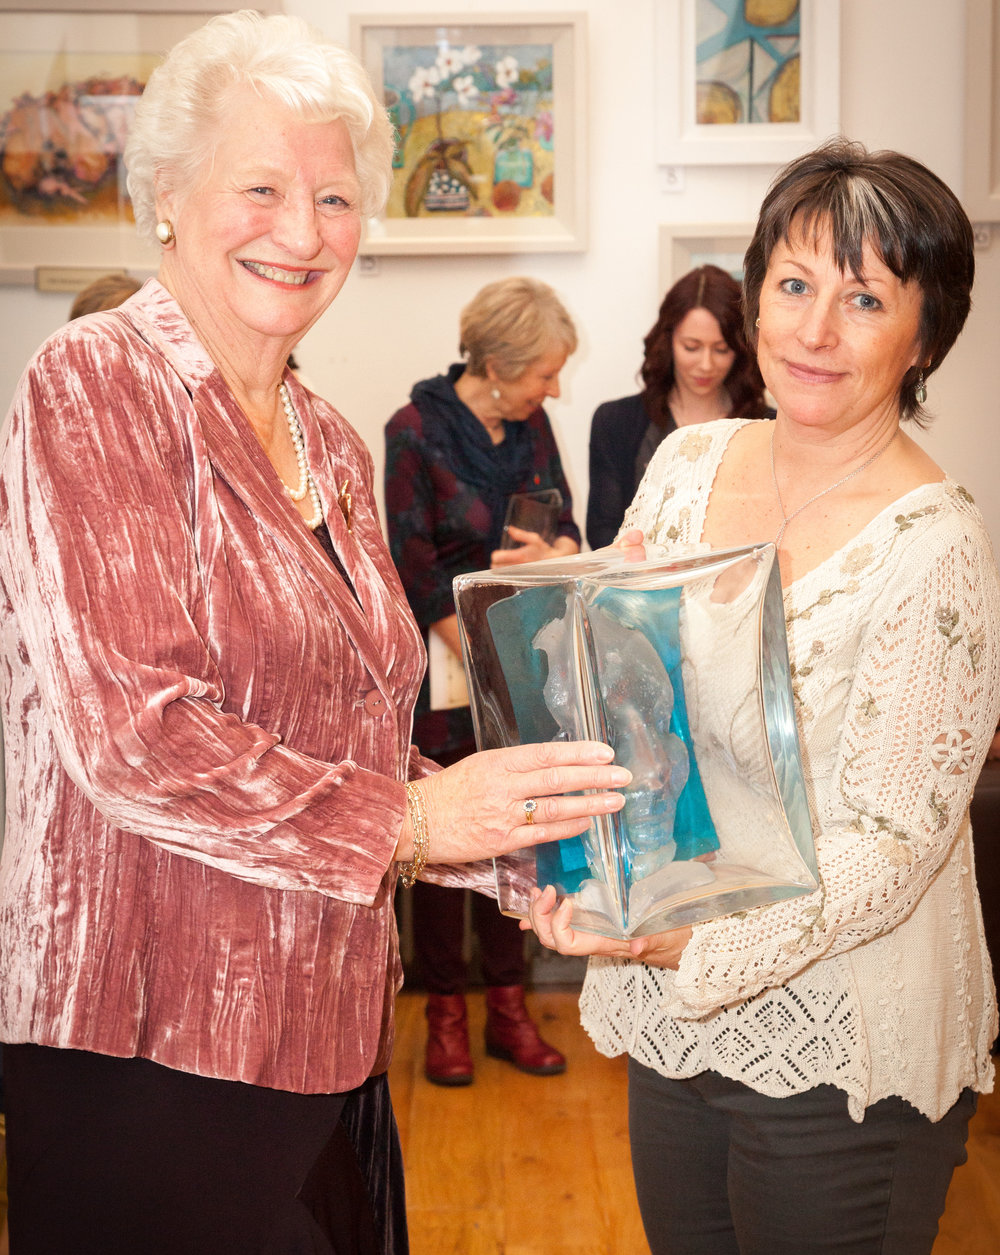 Receiving the Past Presidents award from athlete Dame Mary Peters at the 56th Ulster Women Artists Annual Show in Belfast